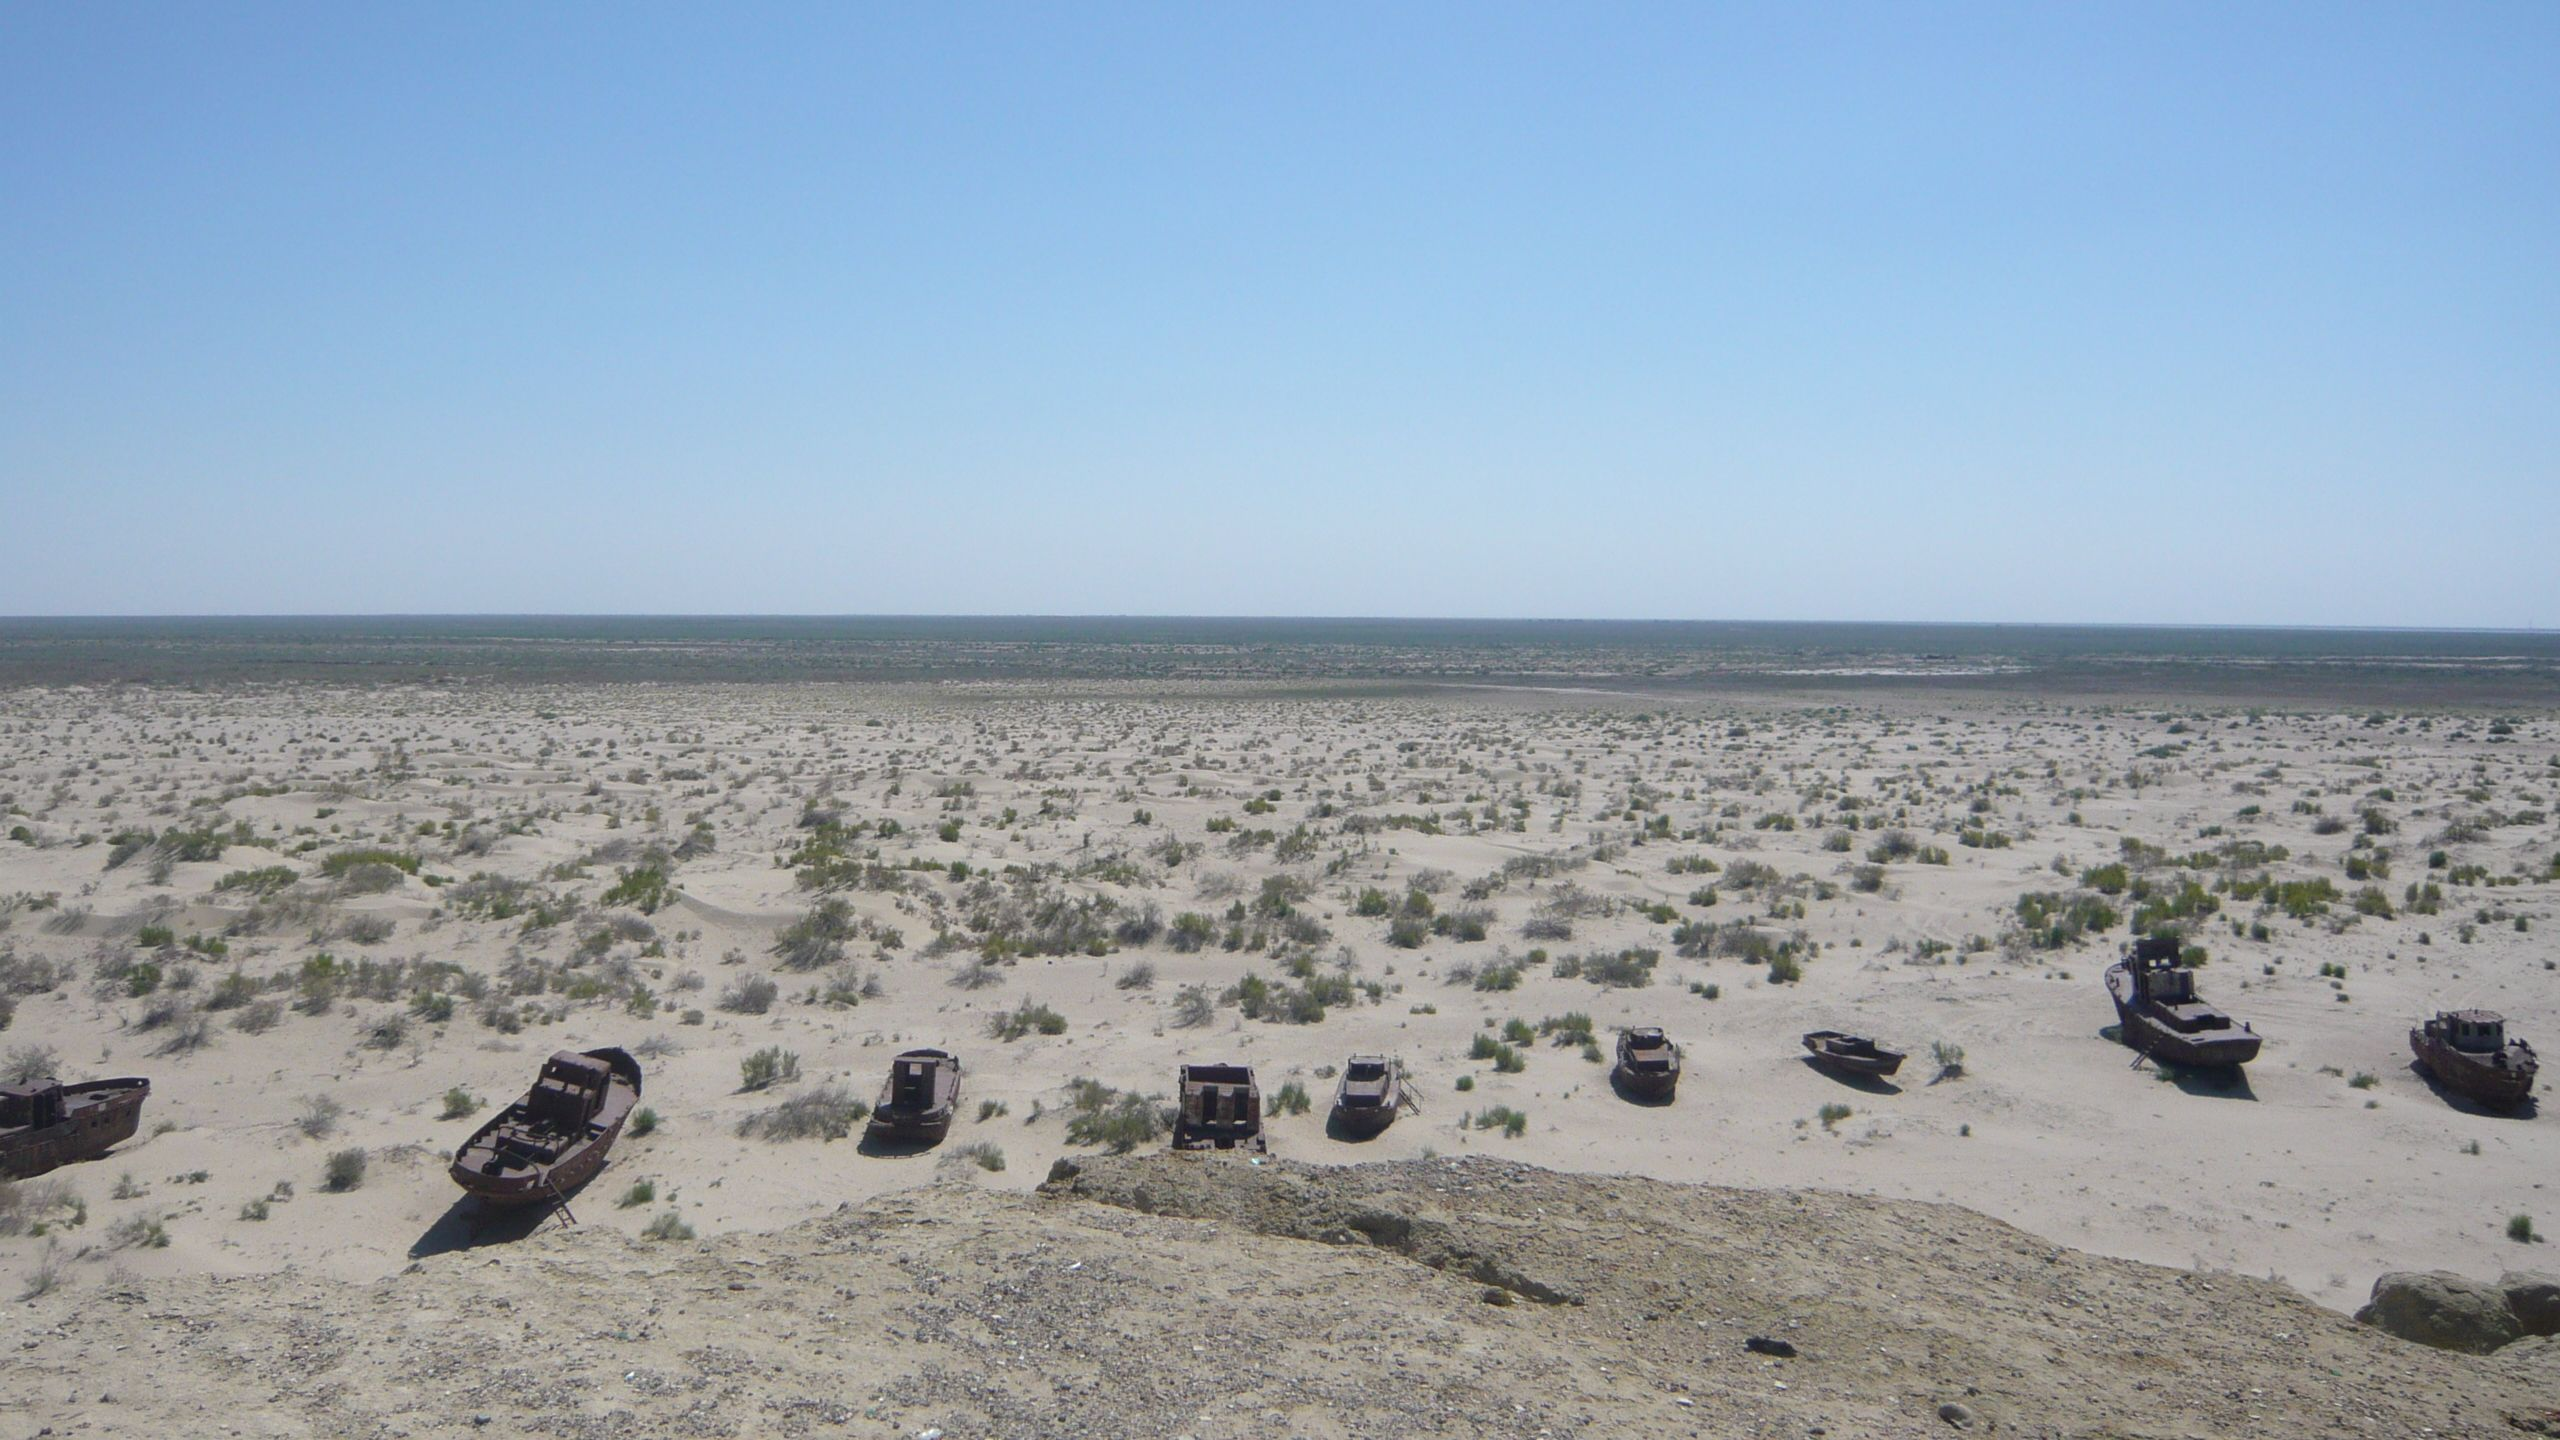 German Experts on the UN Resolution Declaring the Aral Sea Region a Zone of Environmental Innovation and Technology